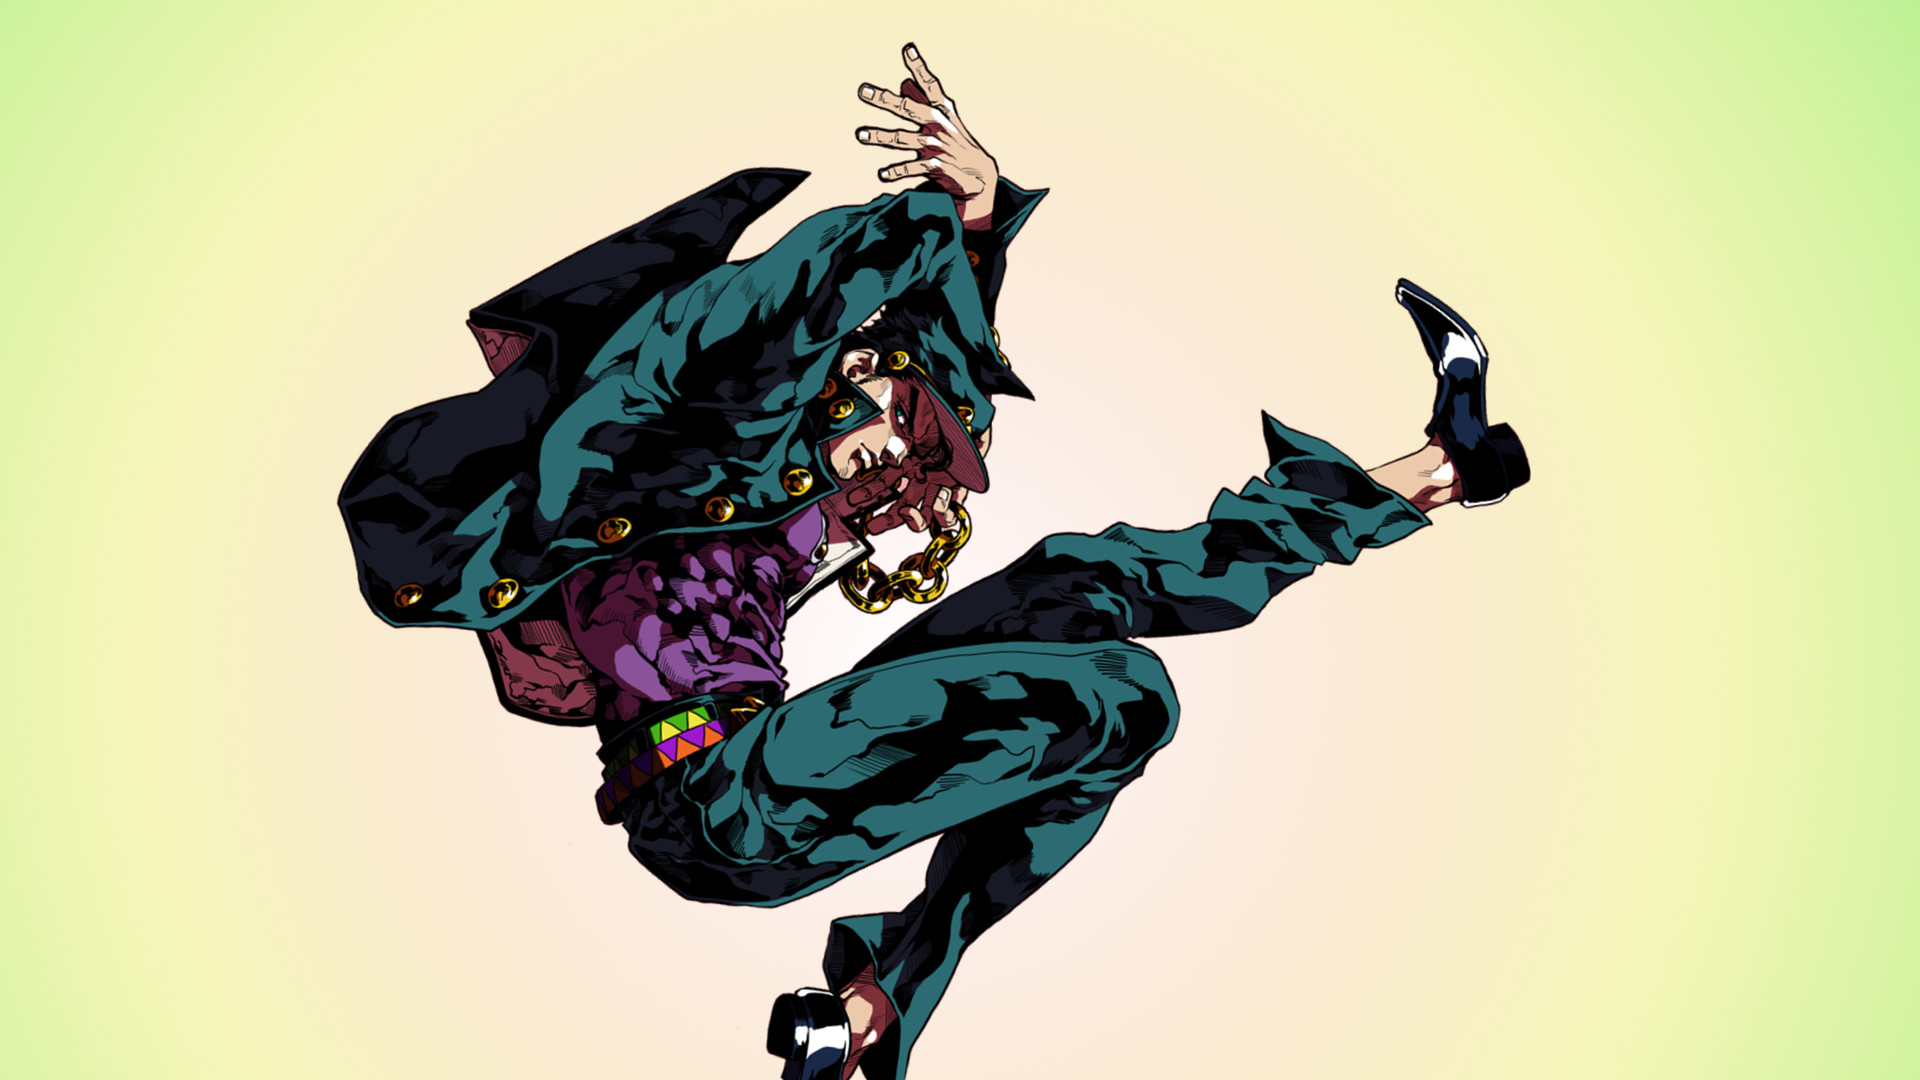 1920x1080 79 Jojo's Bizarre Adventure HD Wallpapers | Backgrounds - Wallpaper Abyss -  Page 3